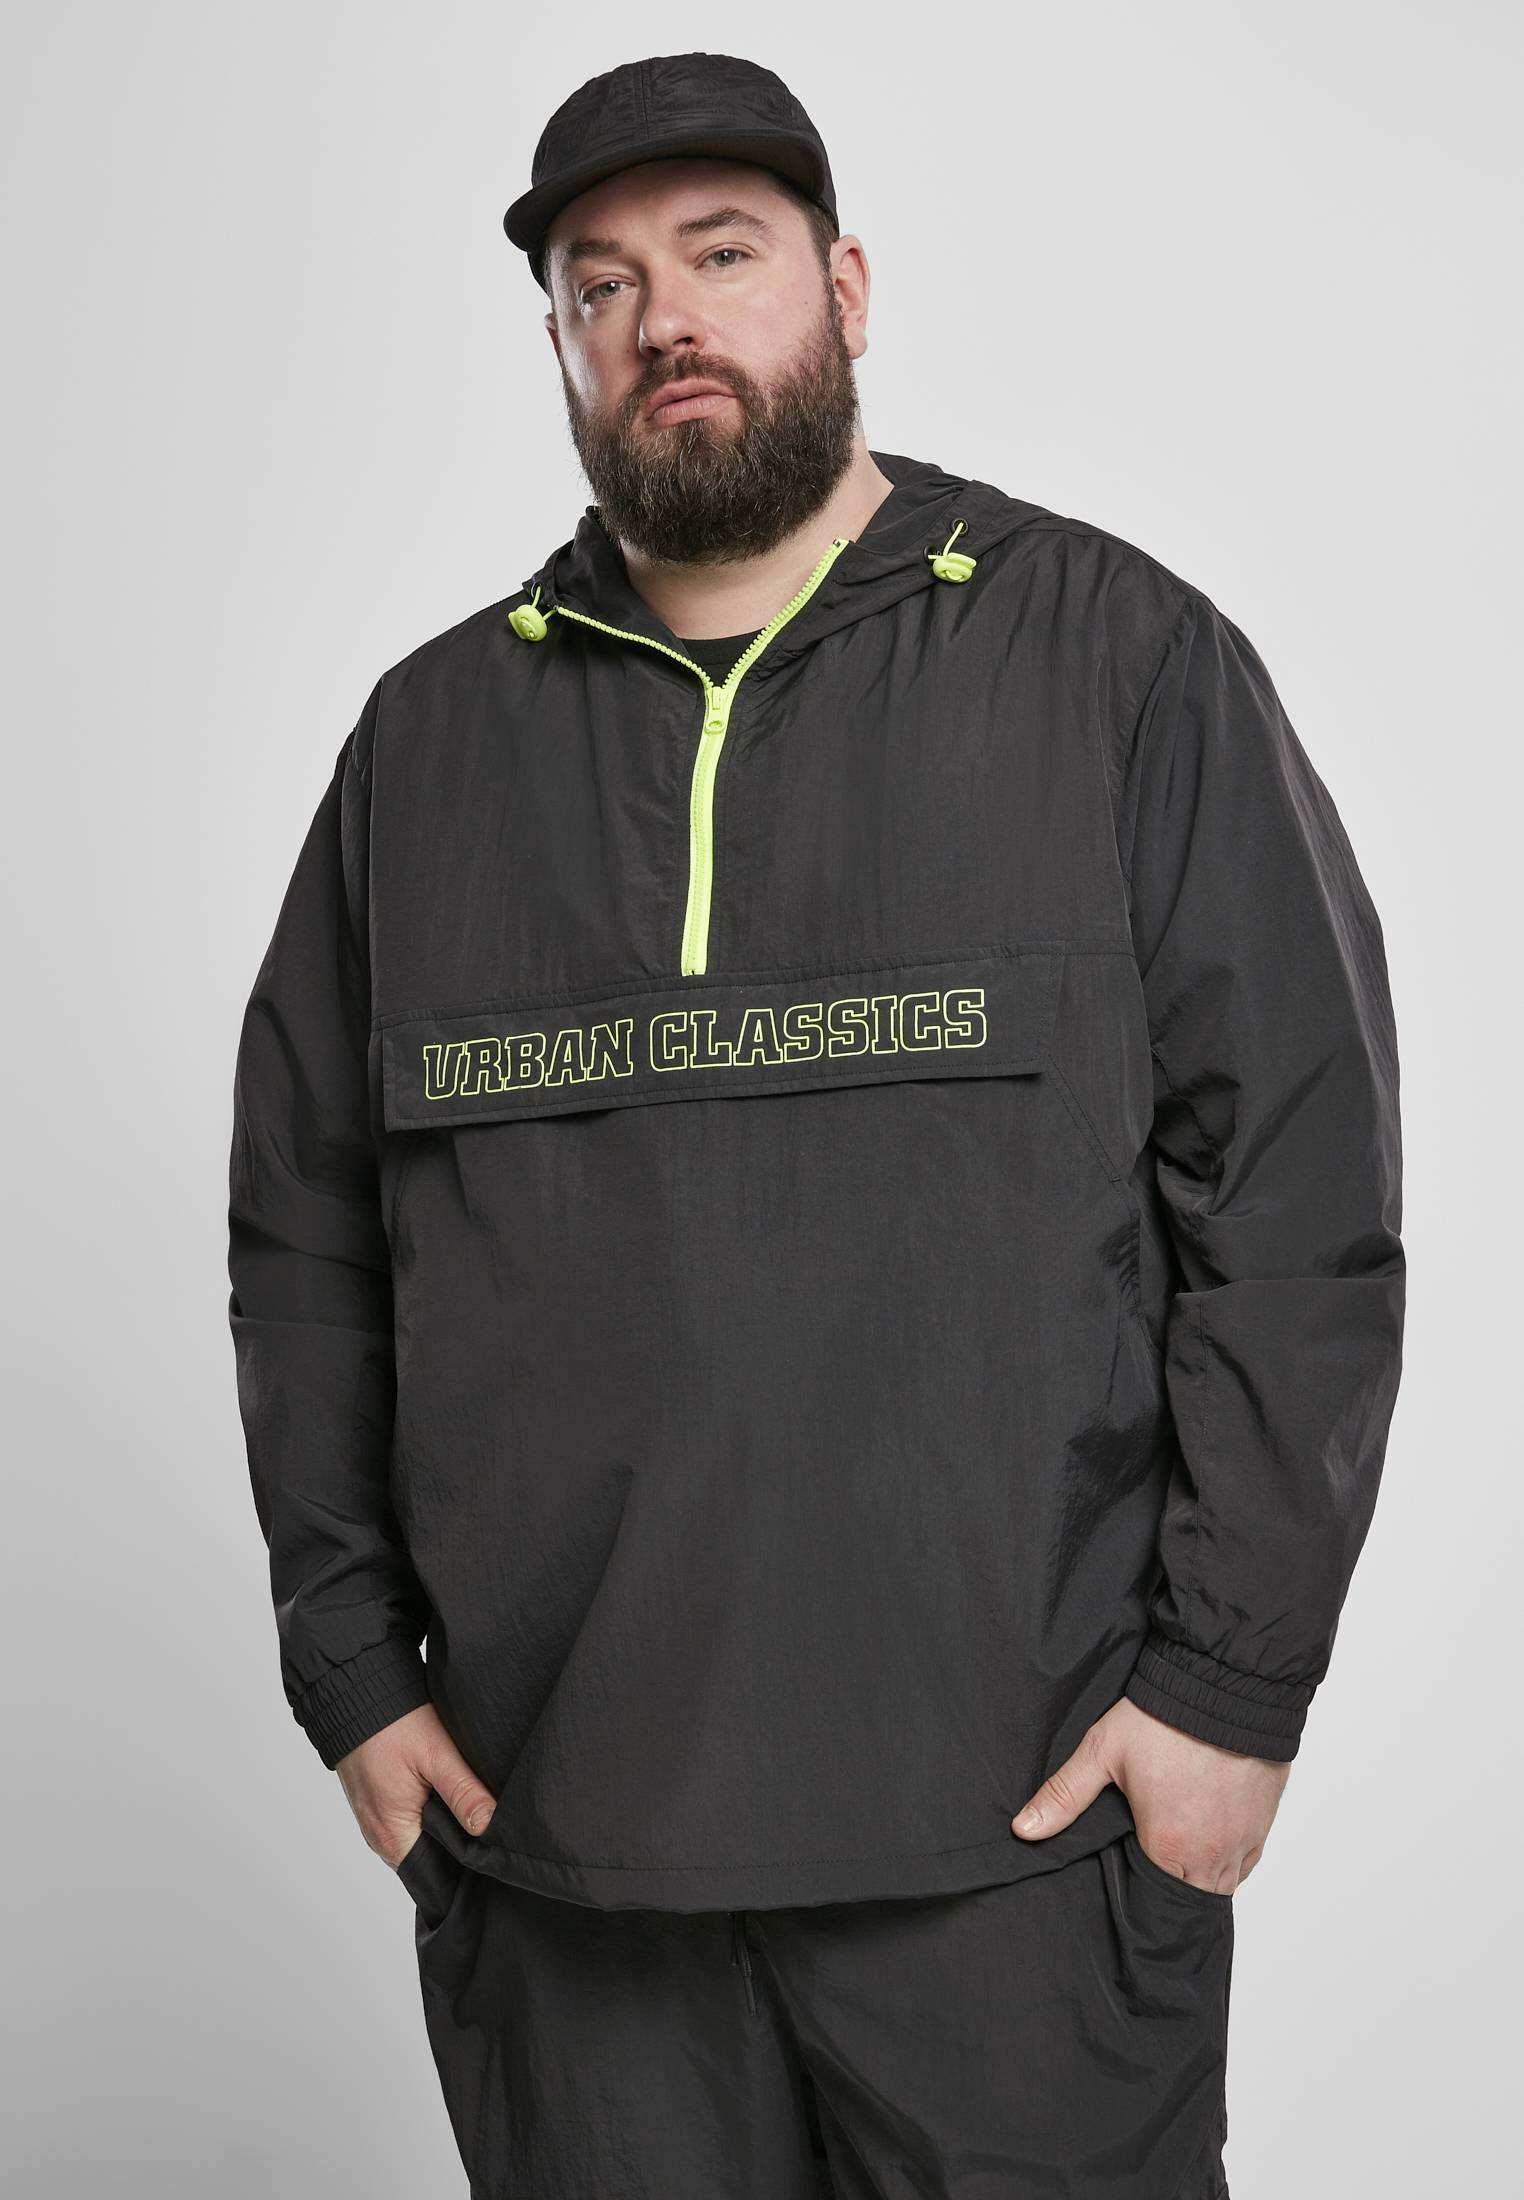 Urban Classics Contrast Pull Over Jacket black/electriclime - 3XL